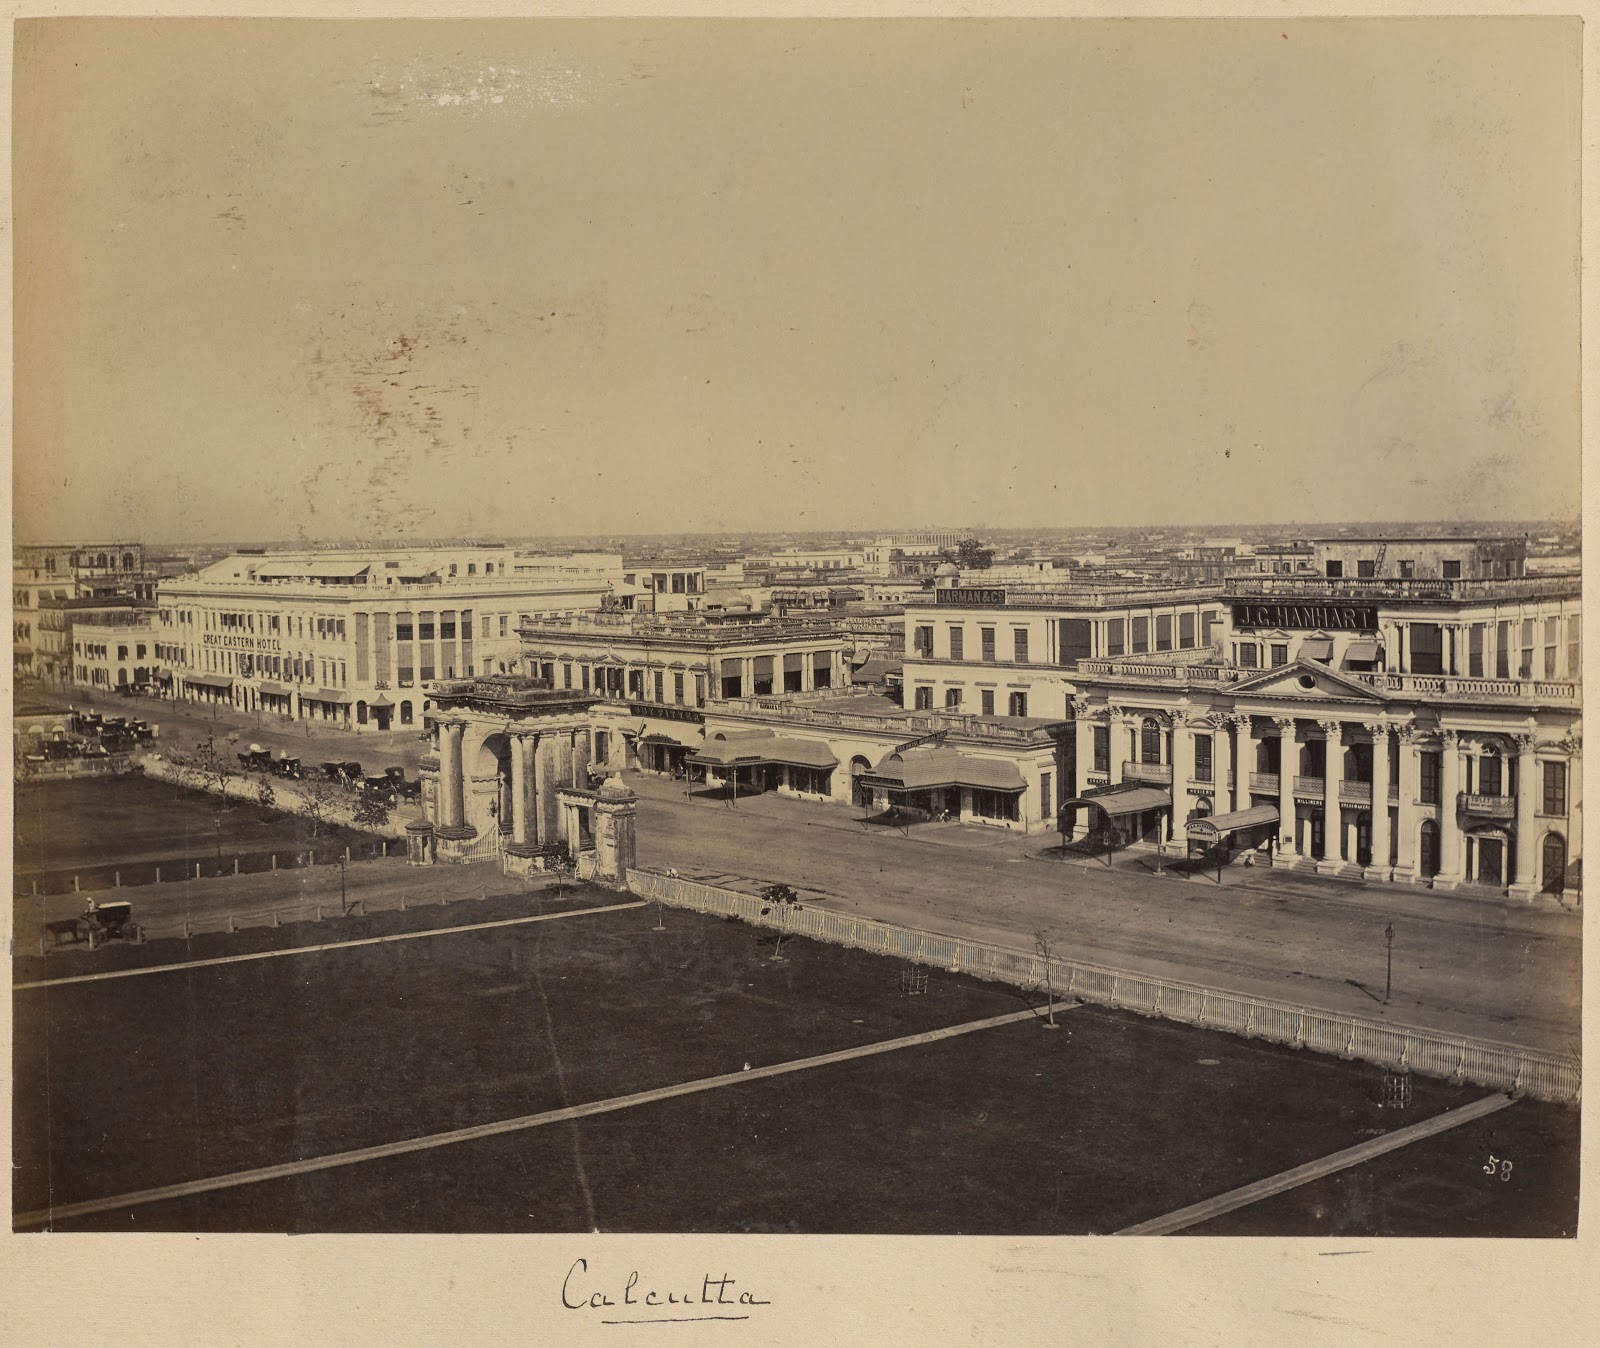 View of Arched Gateways to the Raj Bhavan (Government House) and Great Eastern Hotel - Calcutta (Kolkata) c.1881